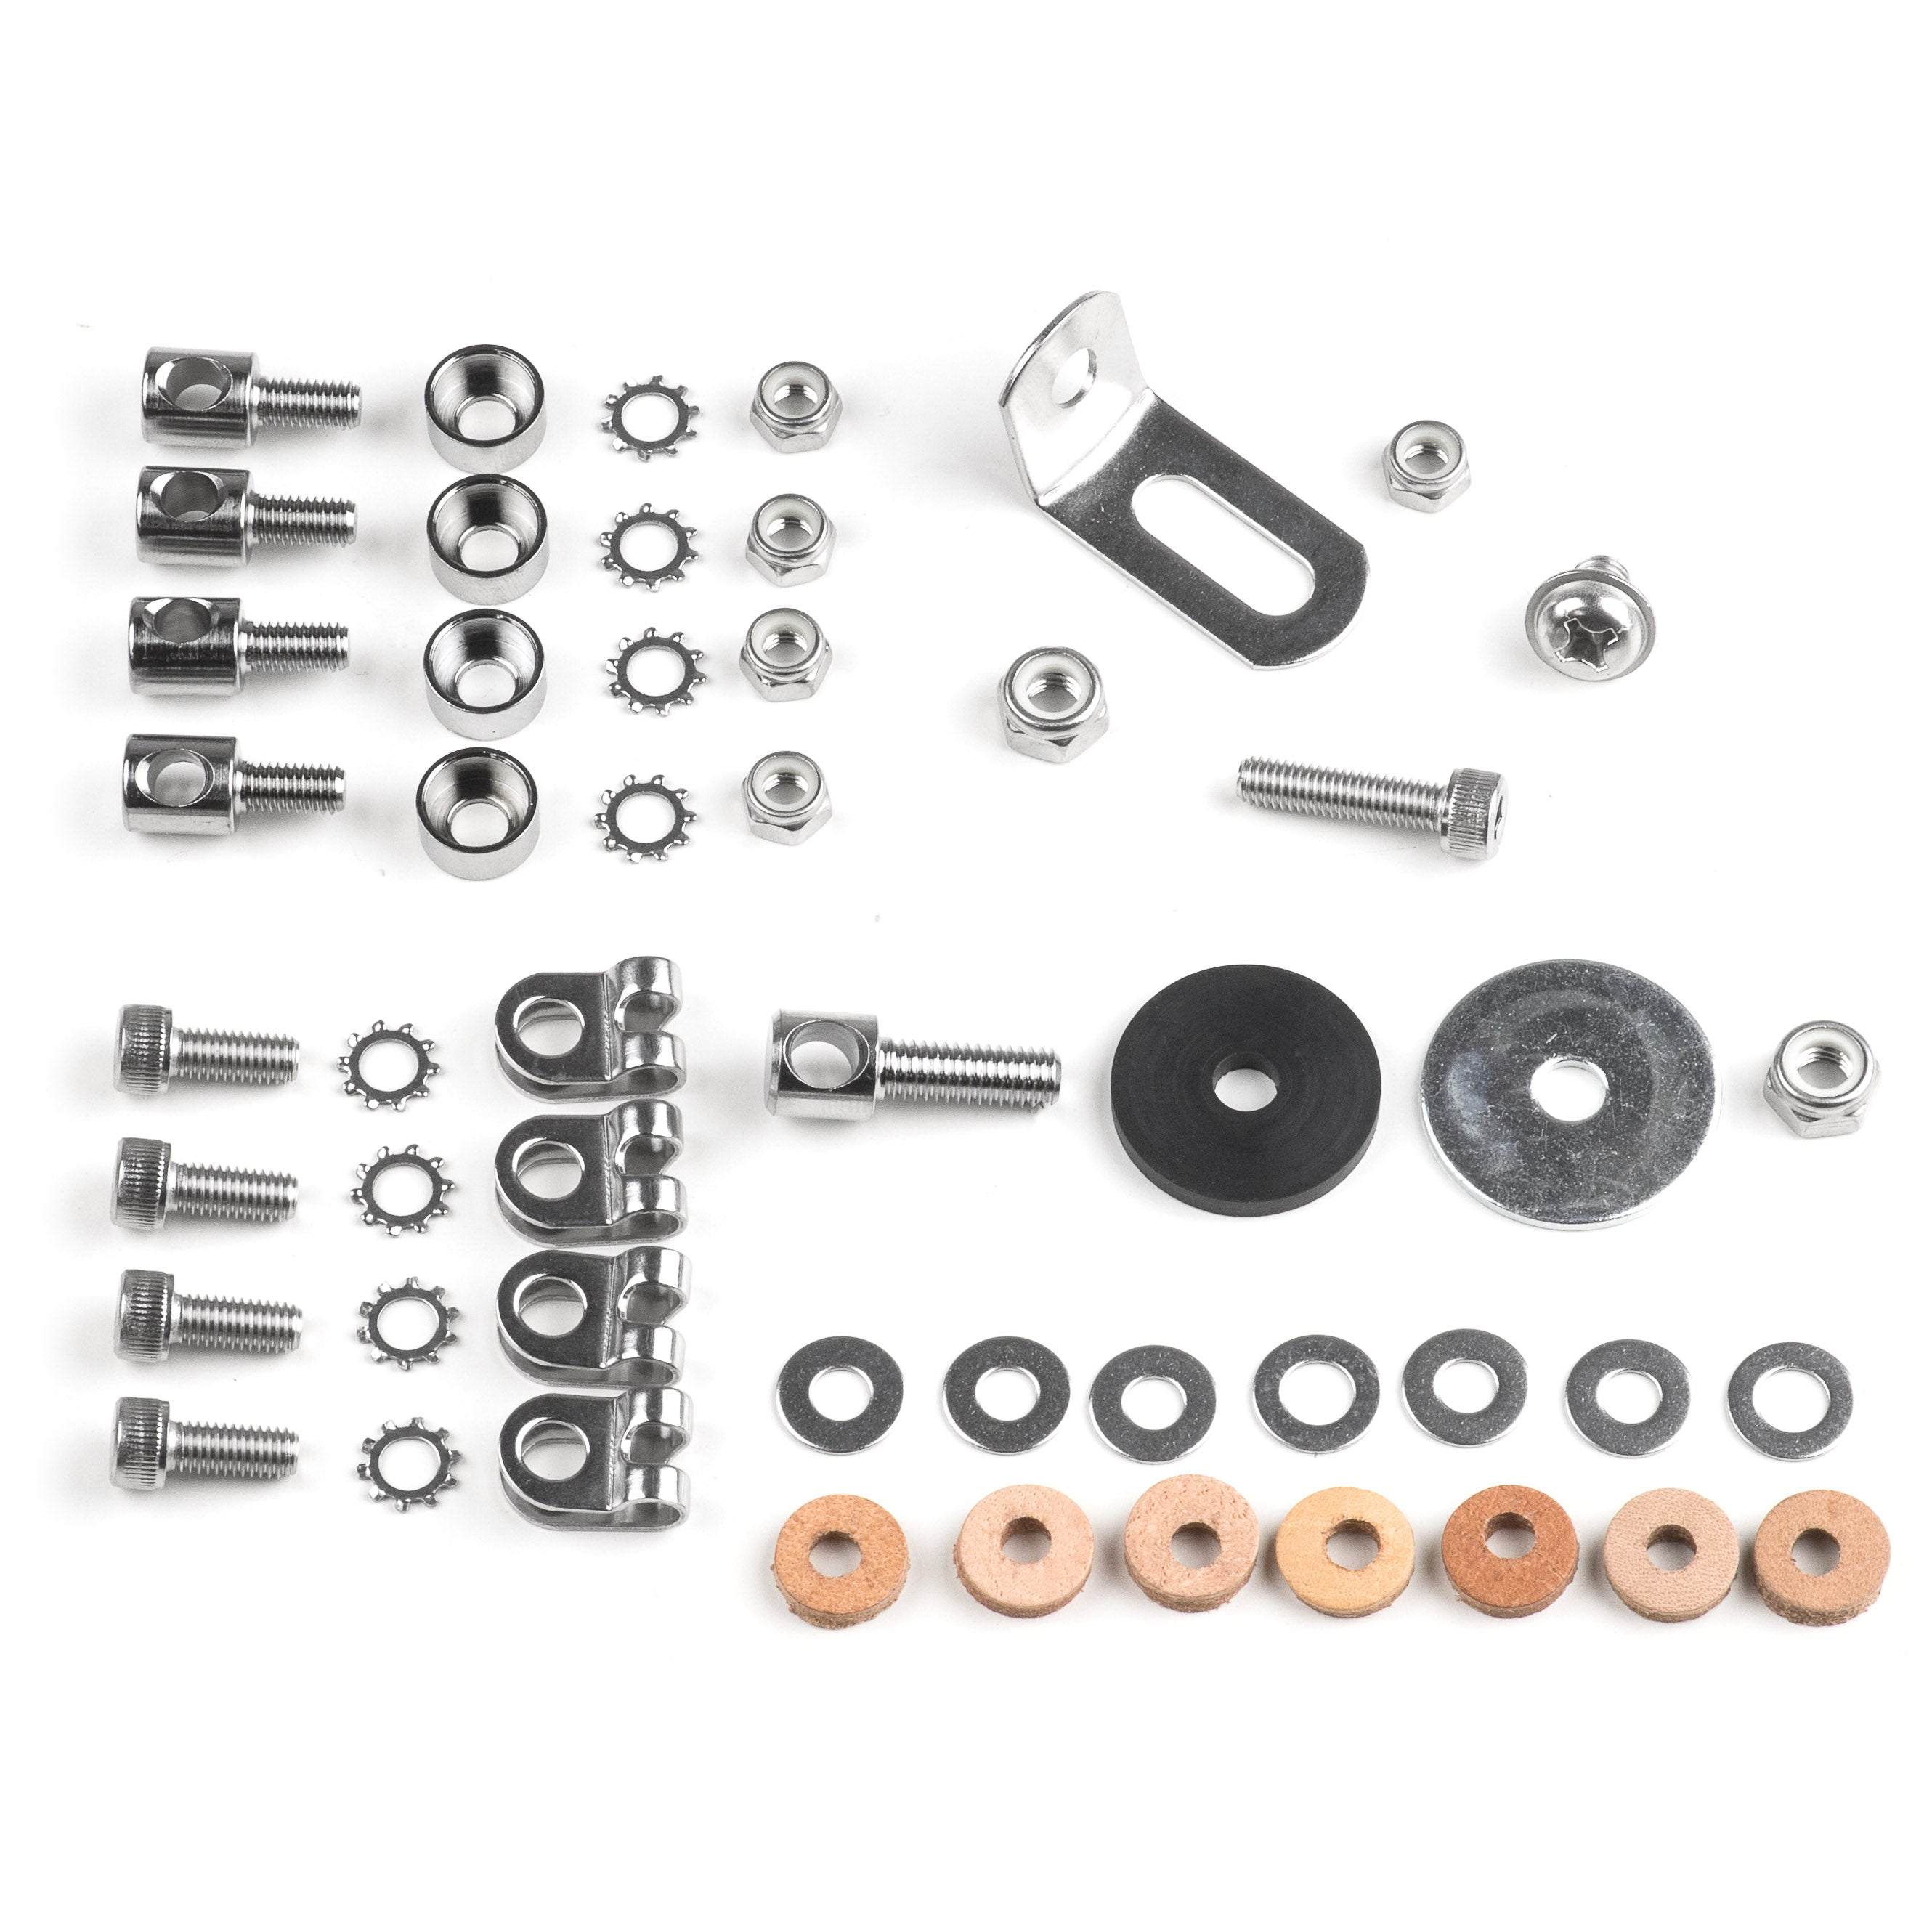 Fender Hardware Kits